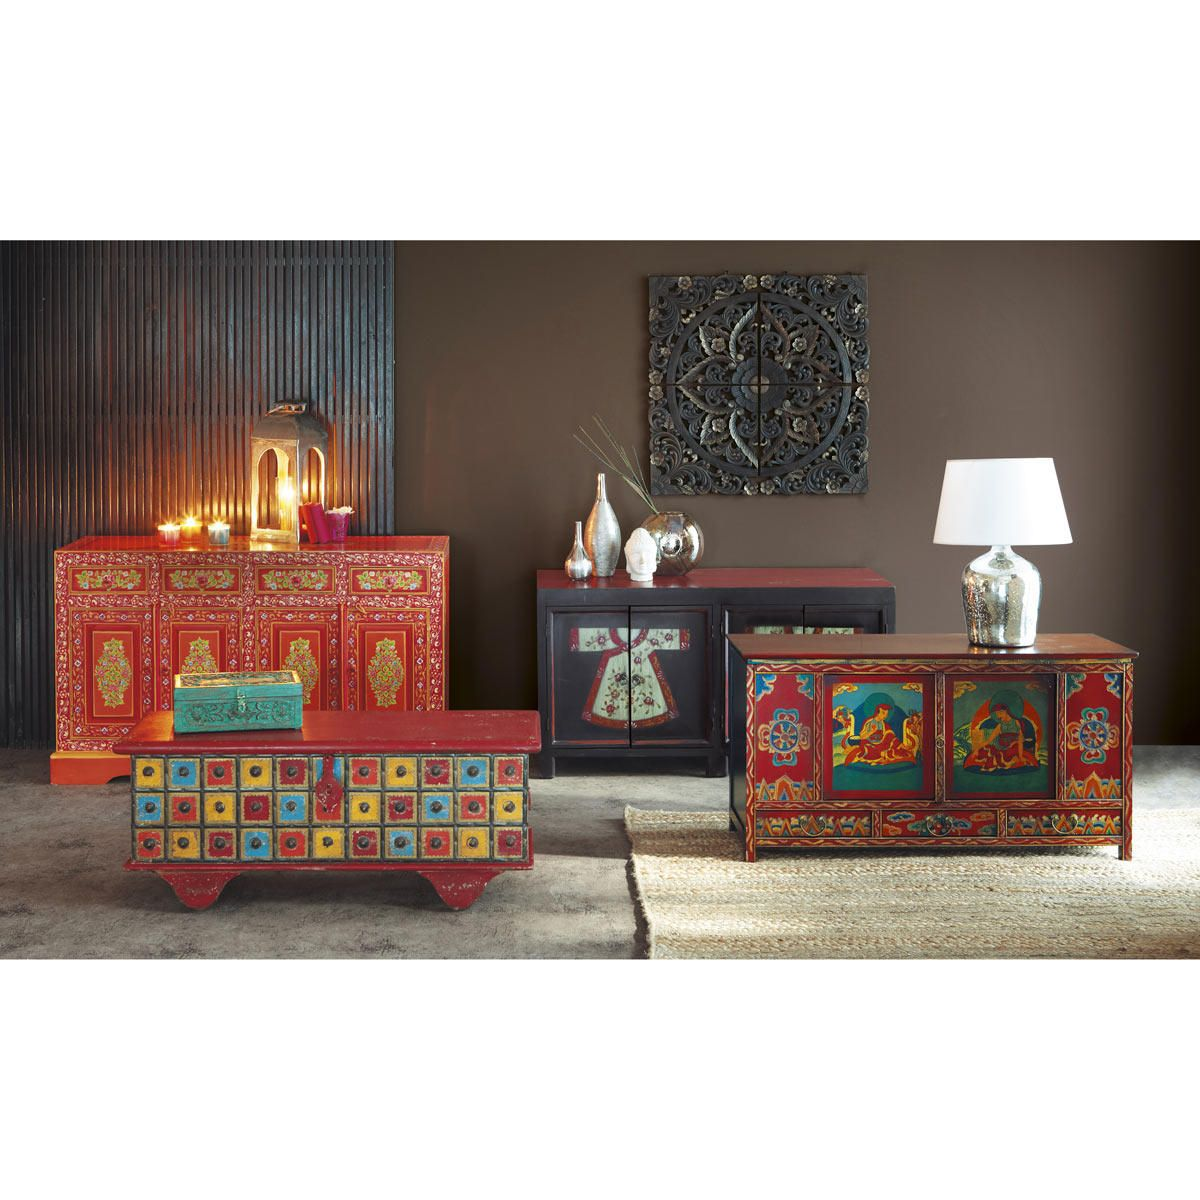 coffre indien en manguier multicolore l 115 cm gipsy. Black Bedroom Furniture Sets. Home Design Ideas